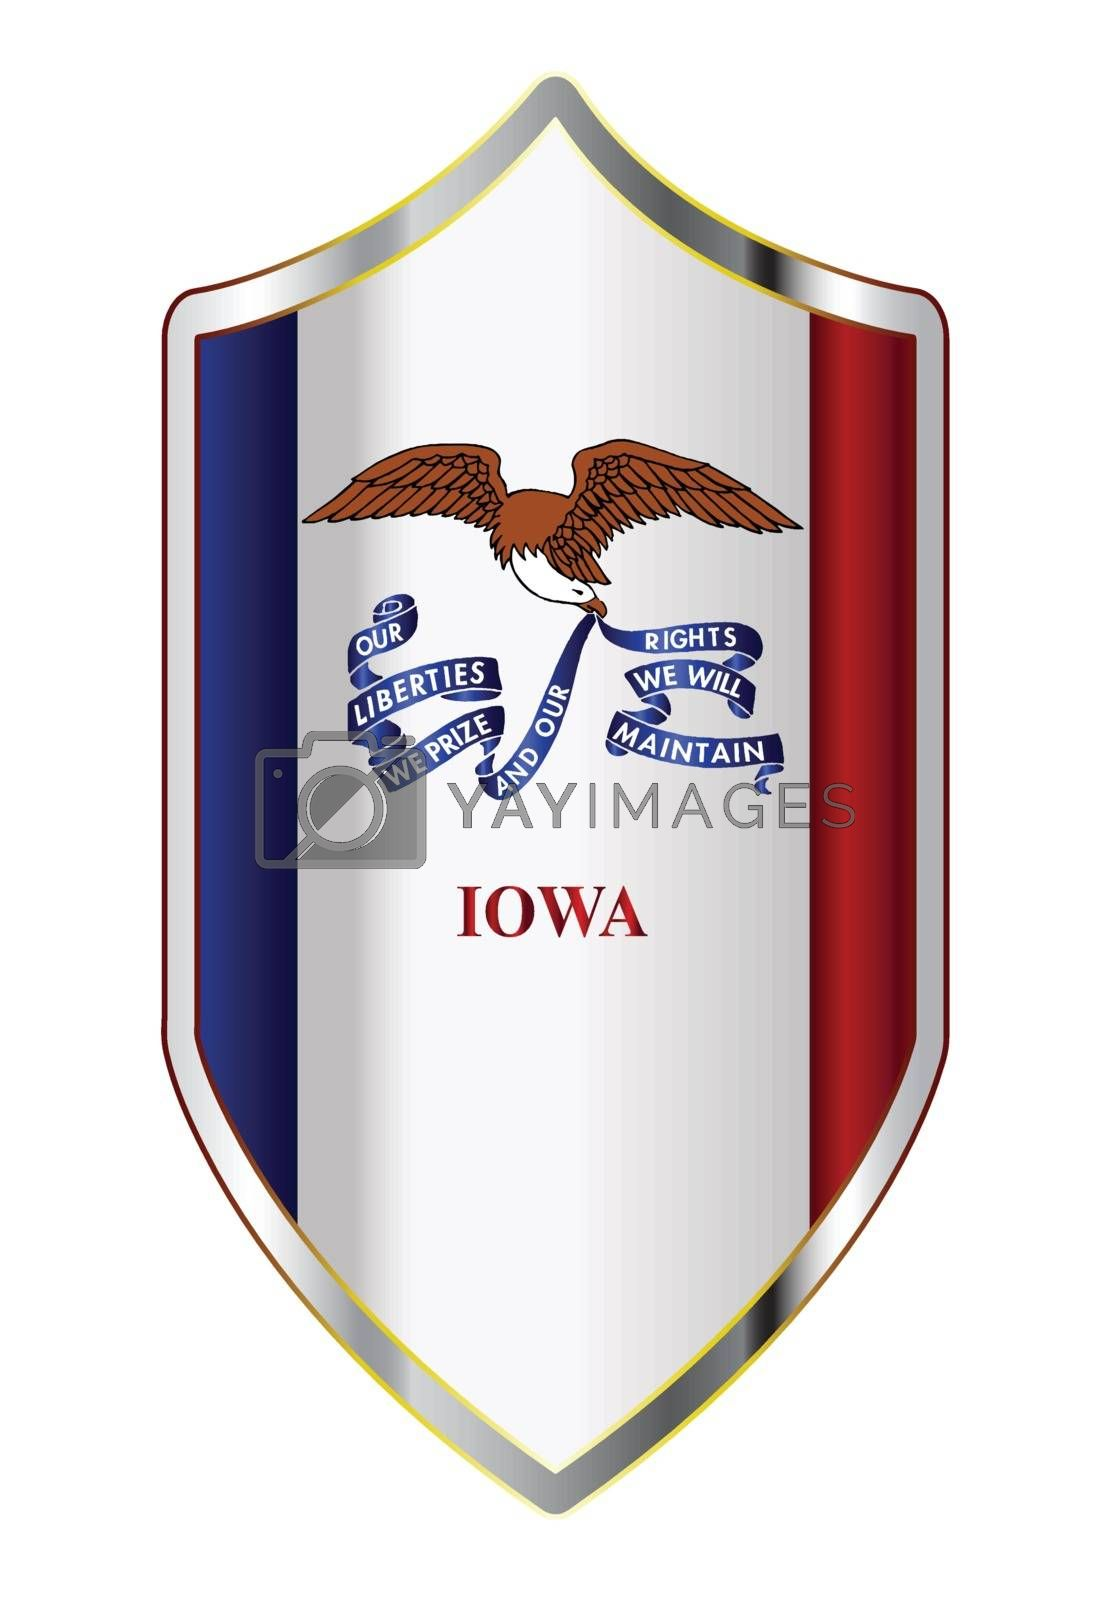 A typical crusader type shield with the state flag of Iowa all isolated on a white background